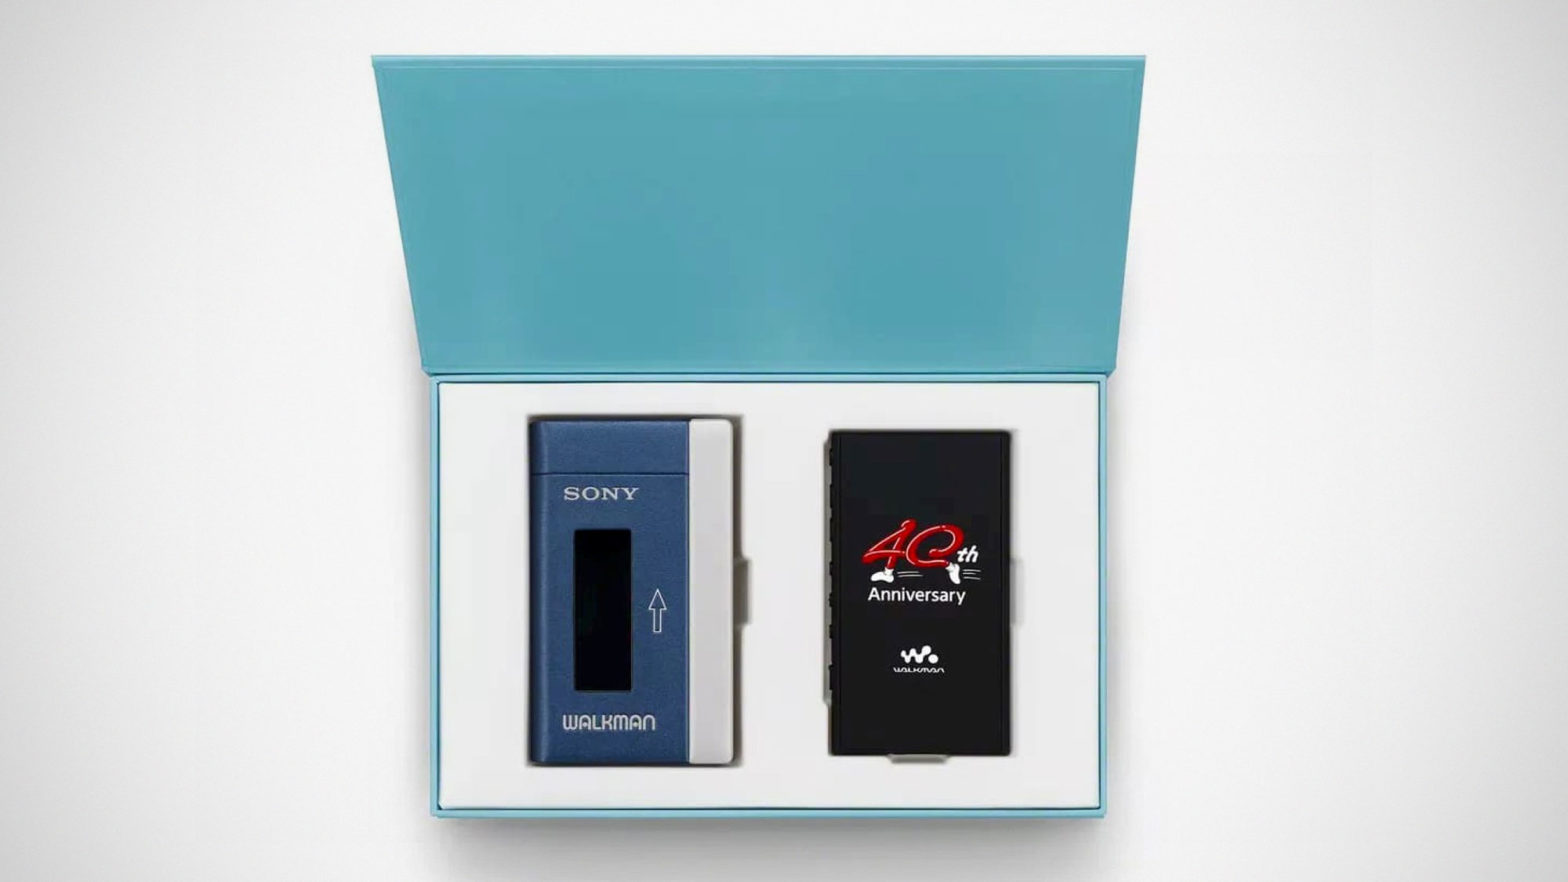 Sony NW-A100TPS 40th Anniversary Walkman